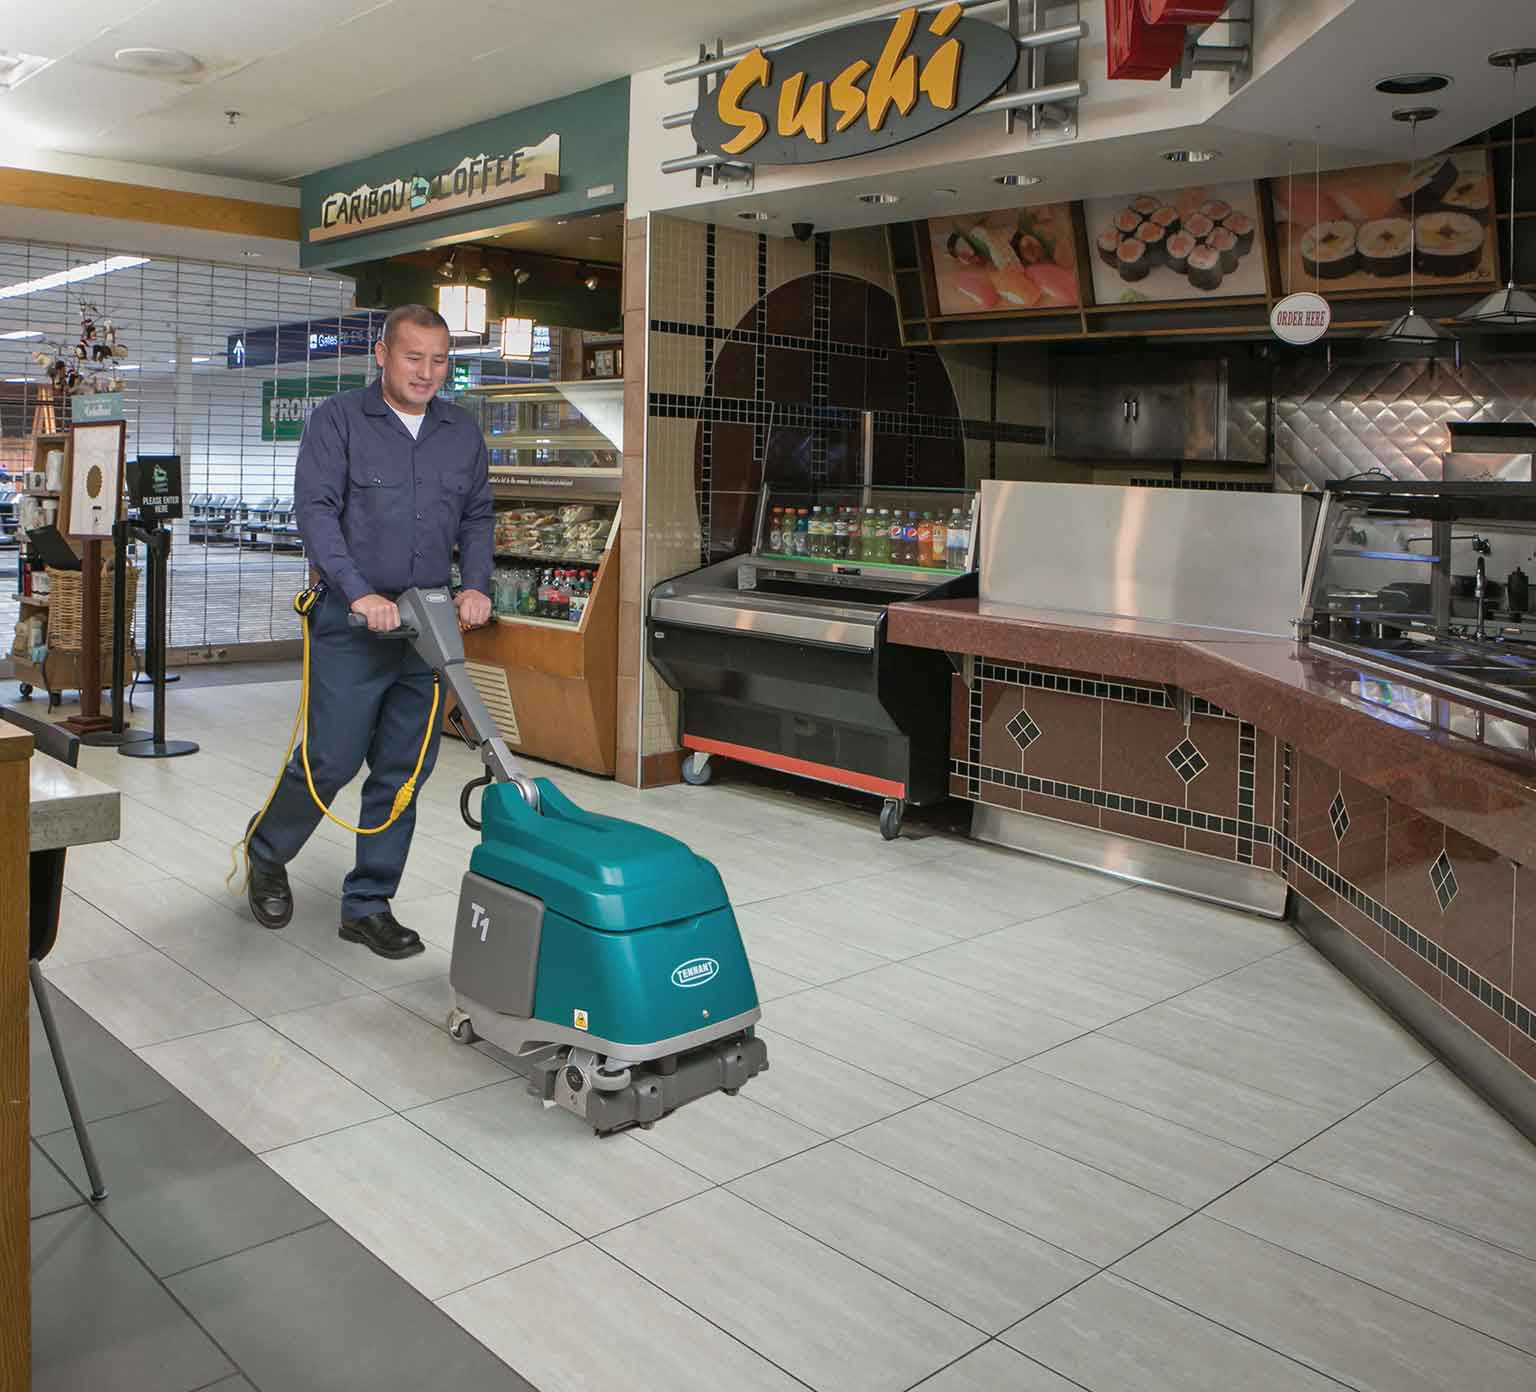 hardwood floor cleaner rental of t1 walk behind micro scrubber tennant company throughout t1 walk behind micro scrubber alt 13